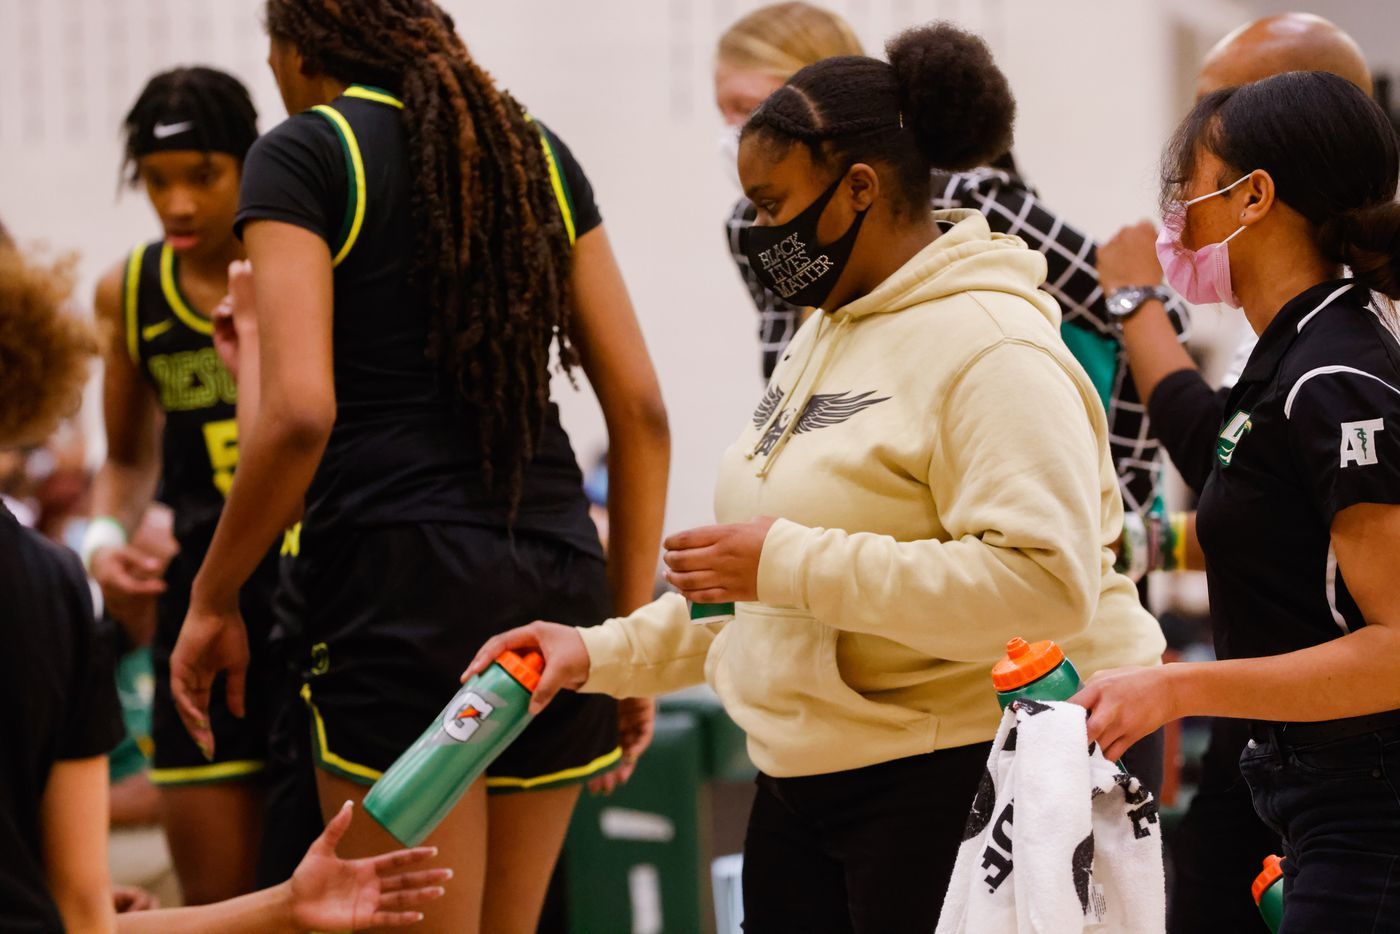 DeSoto's student trainers Corrie Crawford (Center) and Khiya Cockerham (right) give the players water during the second half of a girls basketball Class 6A Region II UIL game against Duncanville in Waxahachie on Tuesday, March 2, 2021. DeSoto won the game 52-39. (Juan Figueroa/ The Dallas Morning News)